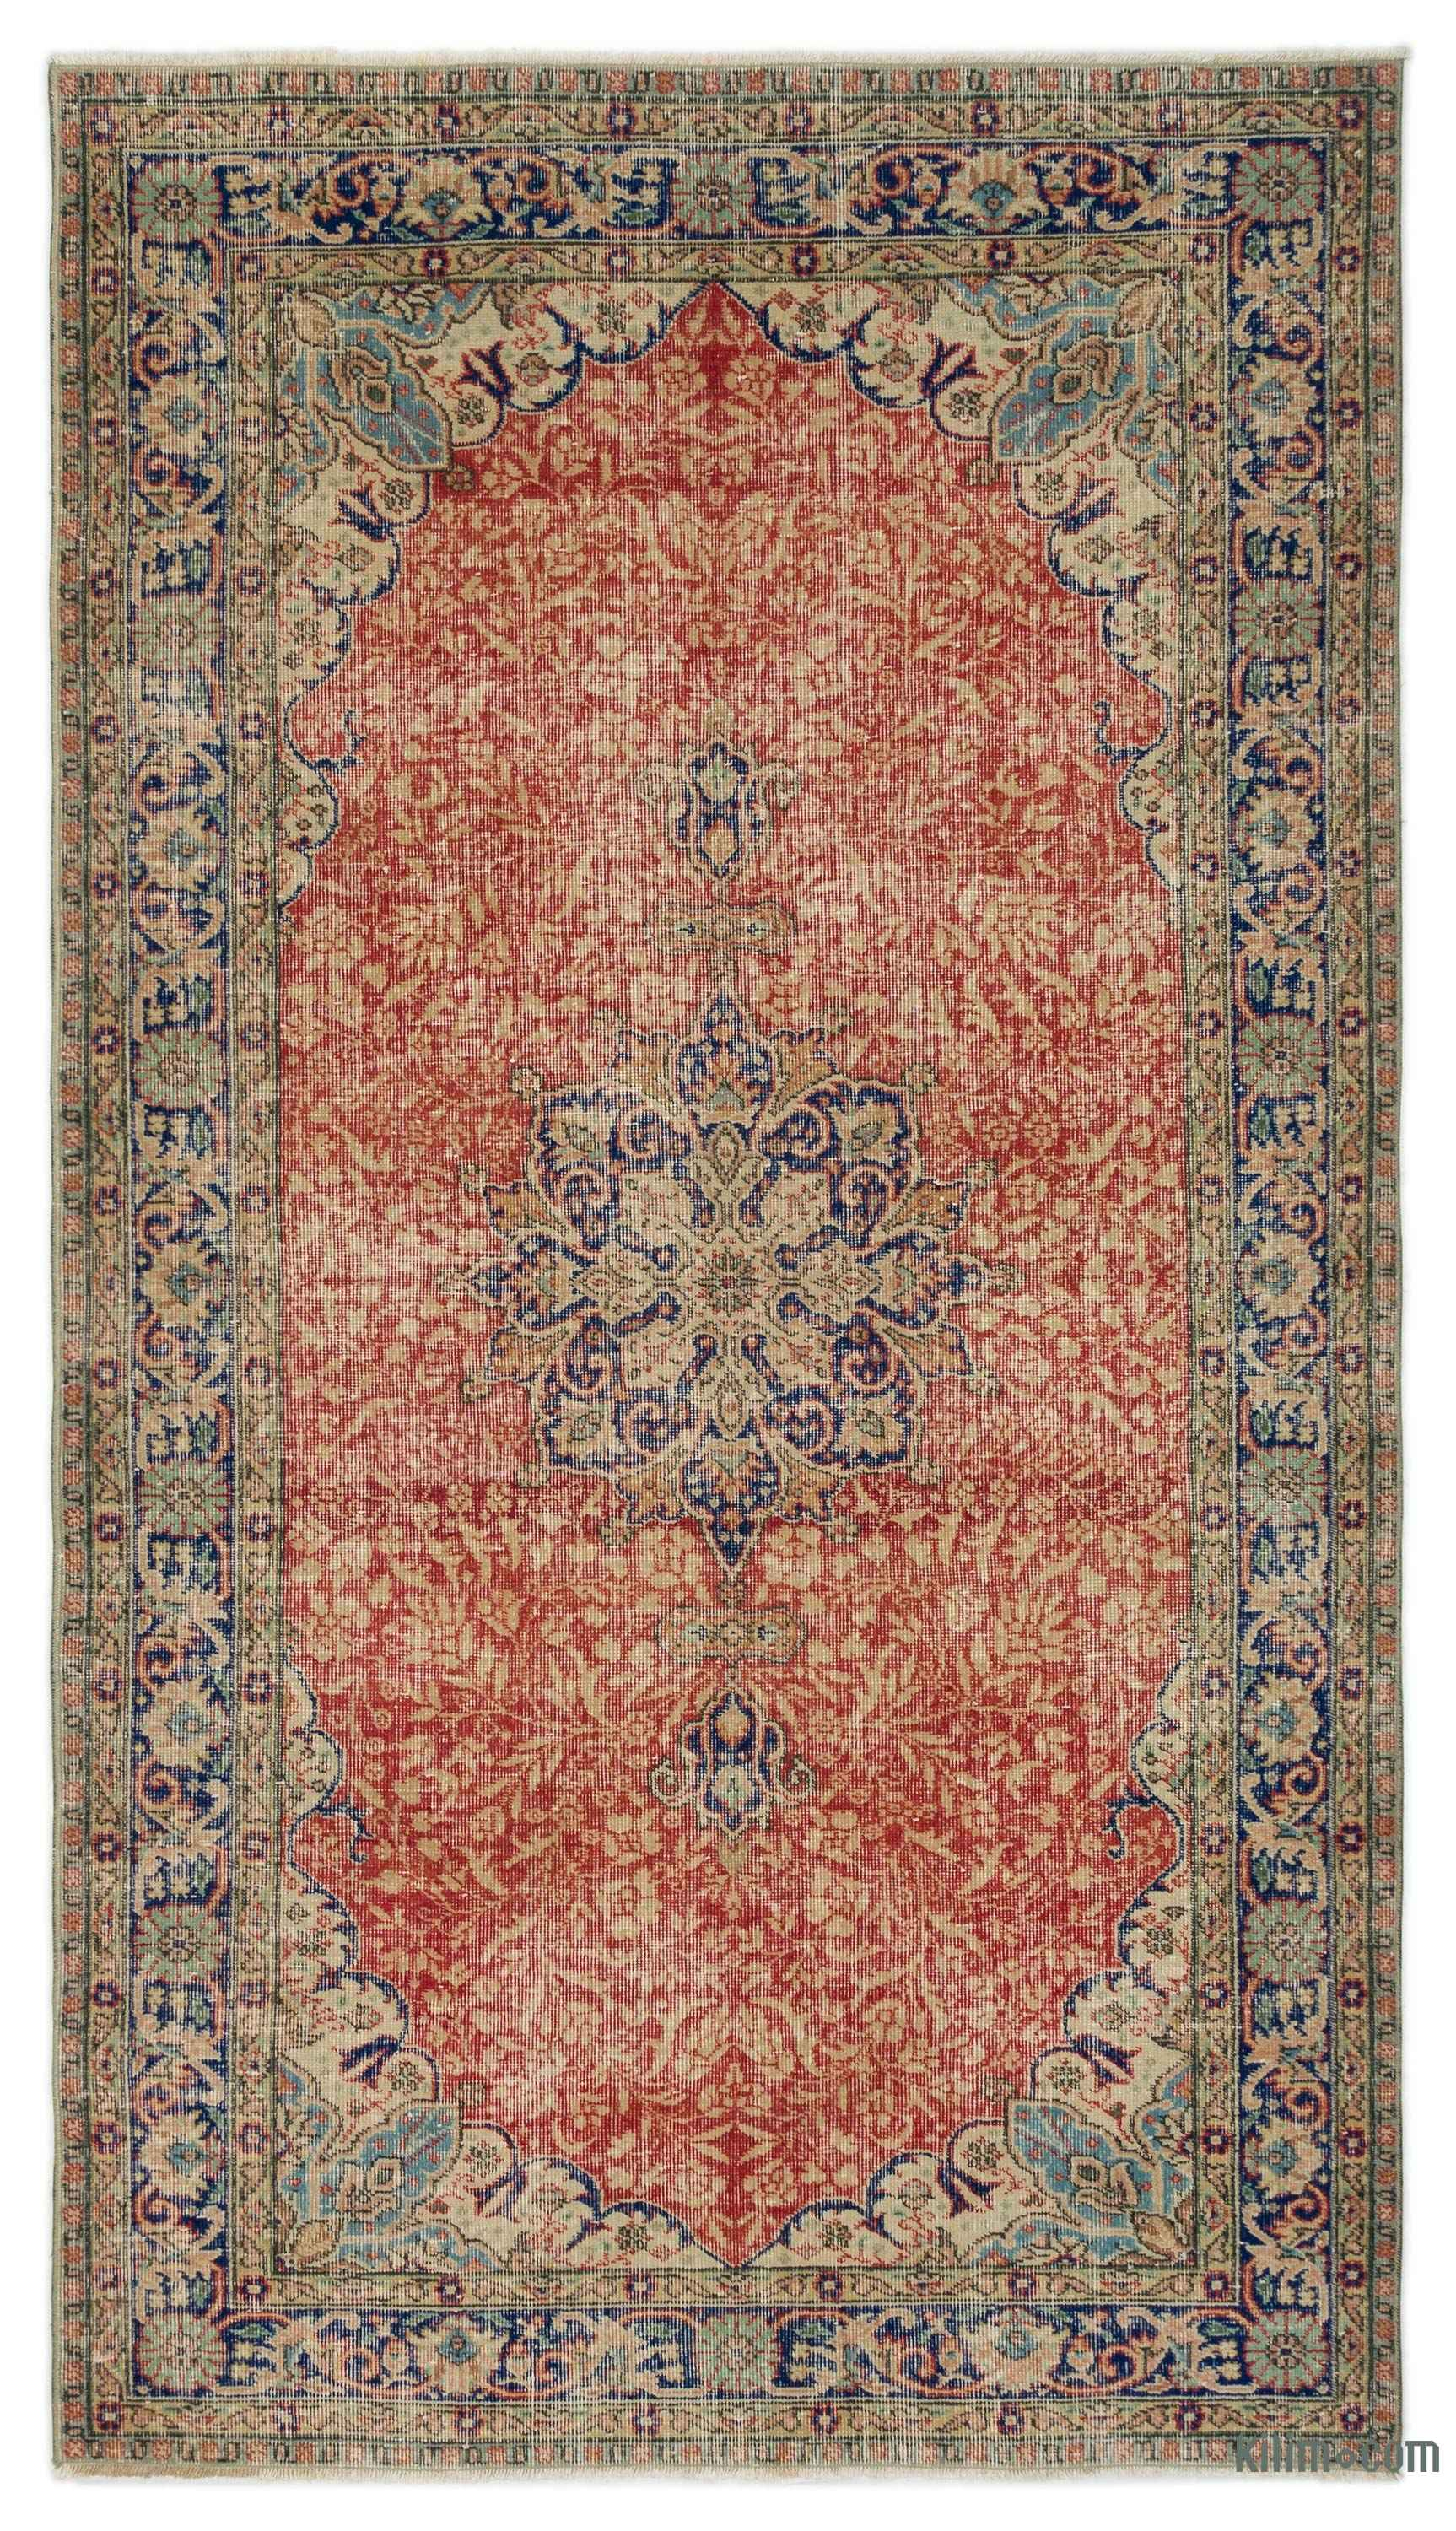 Woolmark Rugs 8x10 Area Rug Ideas